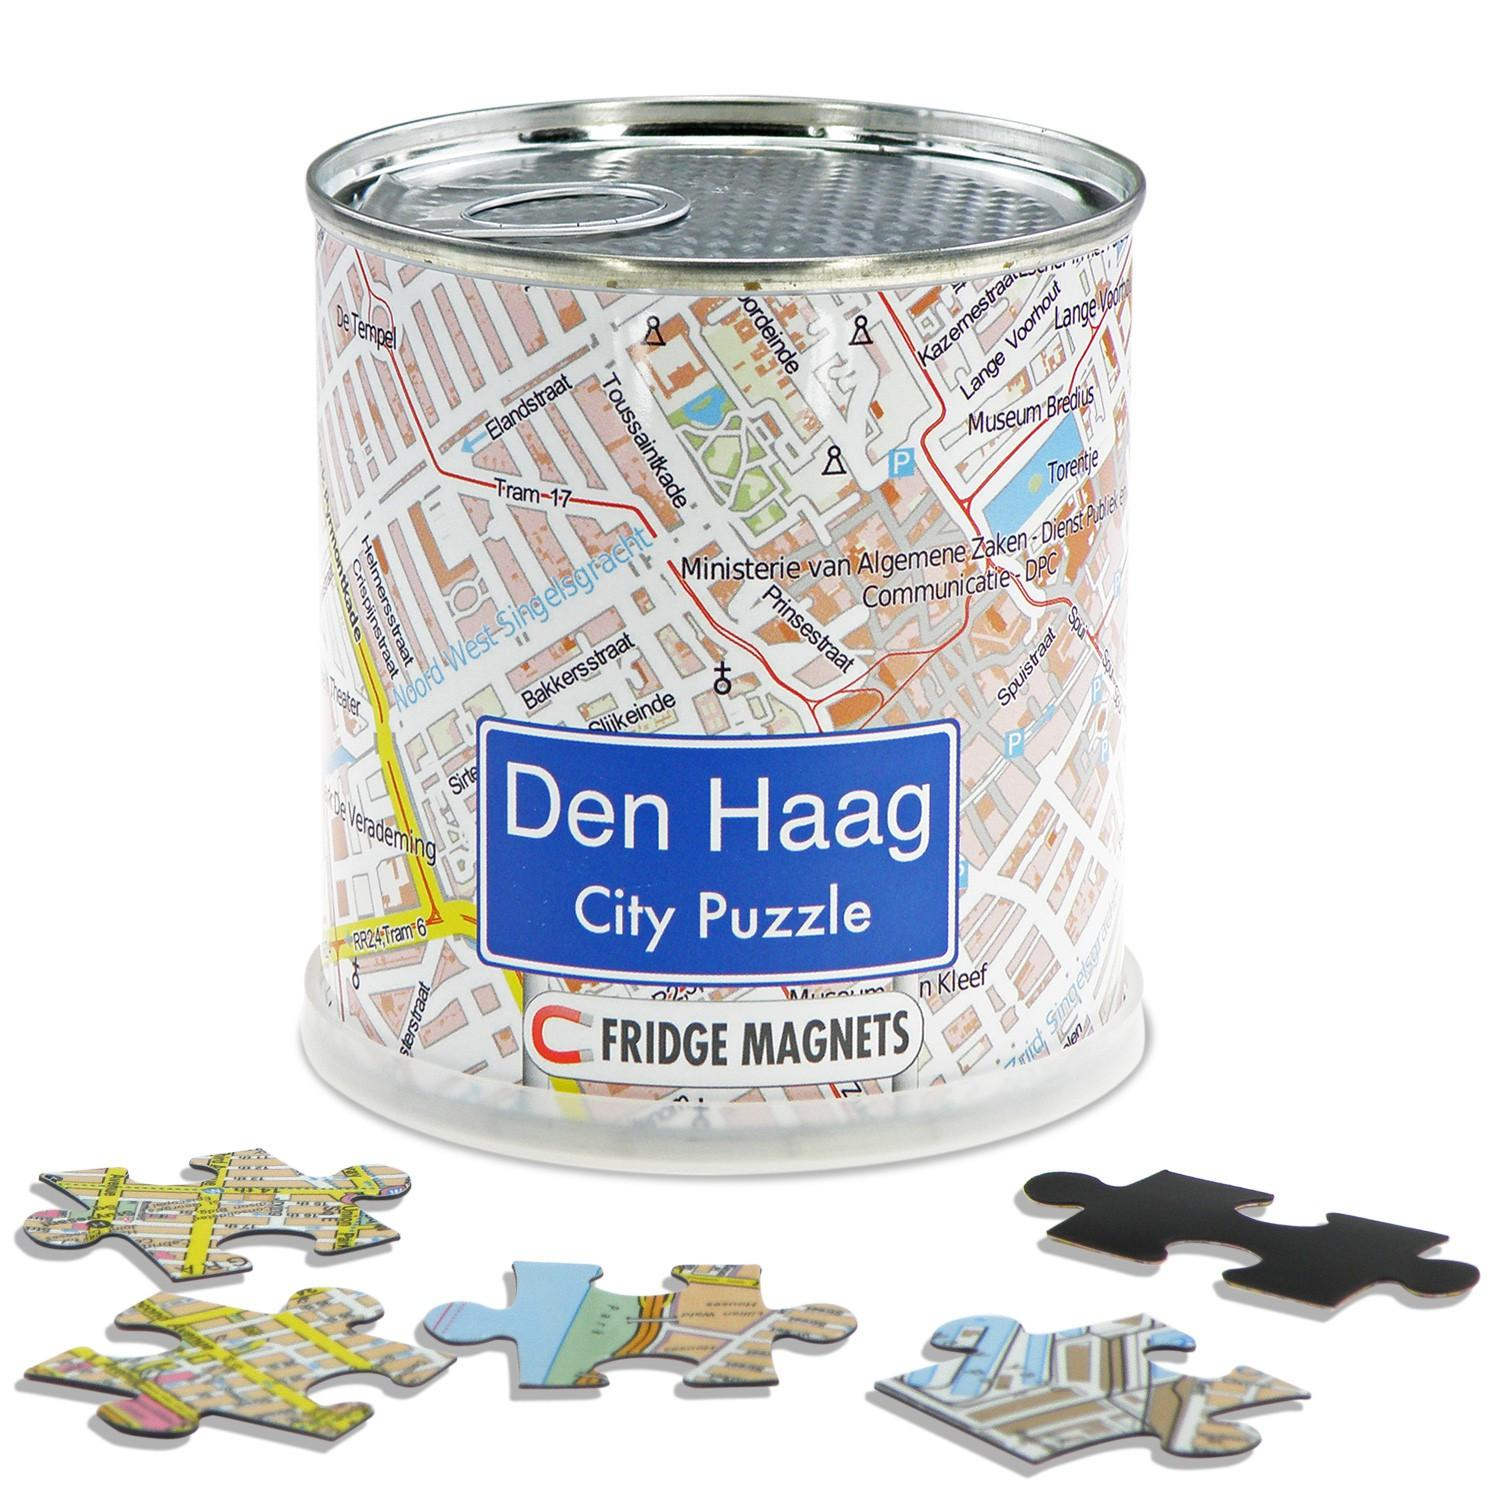 City Puzzle Magnets Den Haag